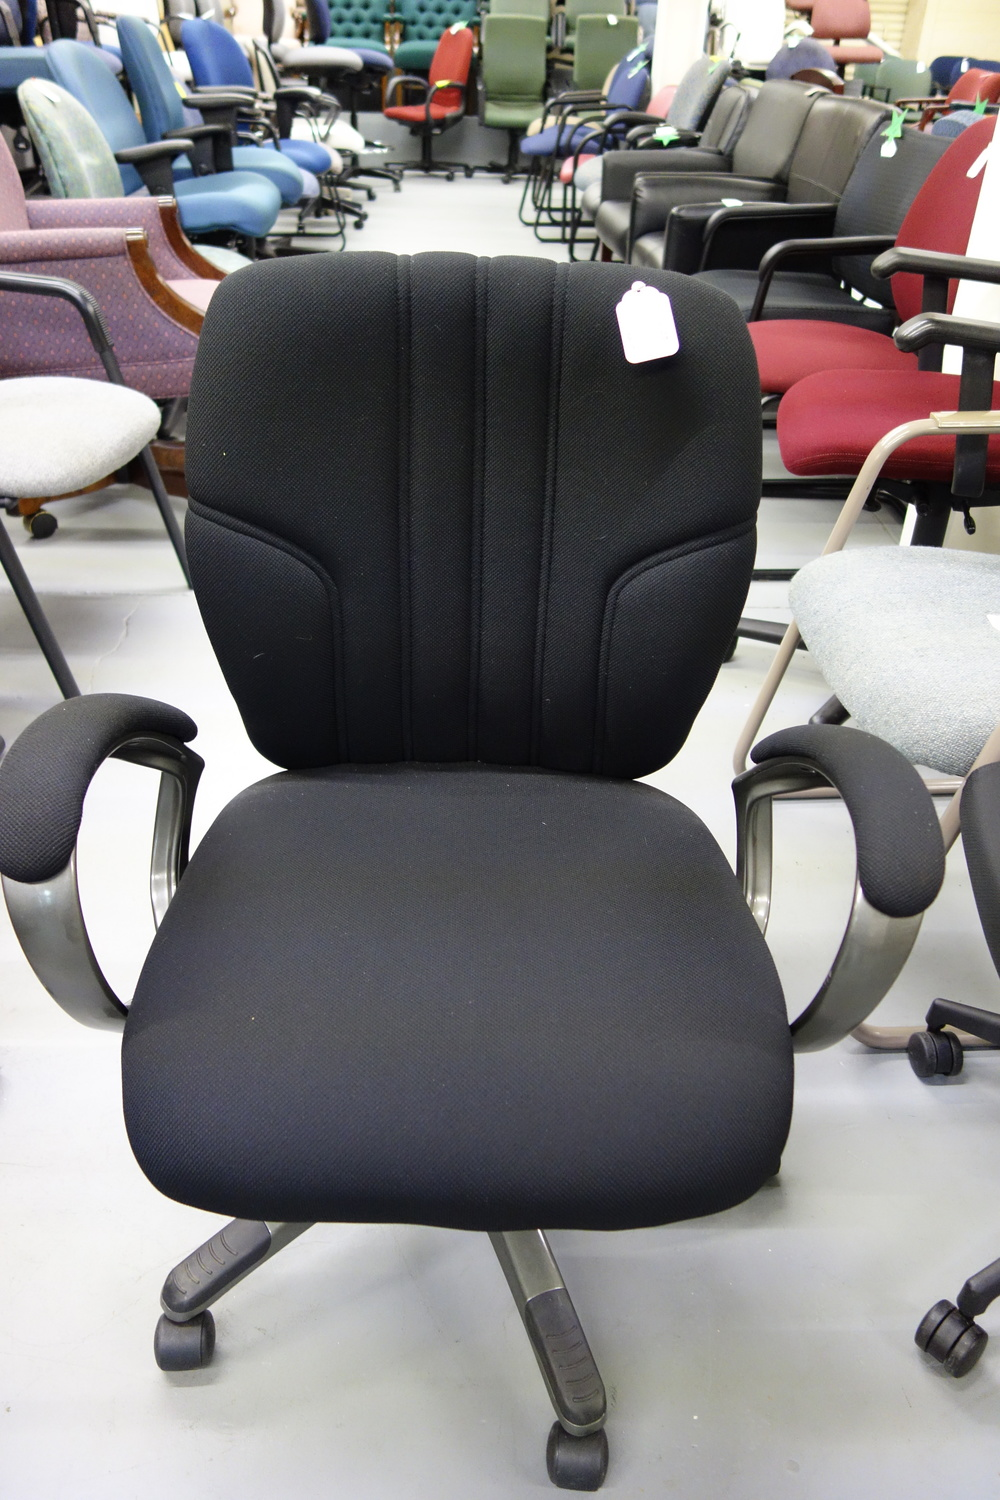 Office chairs $69-199!